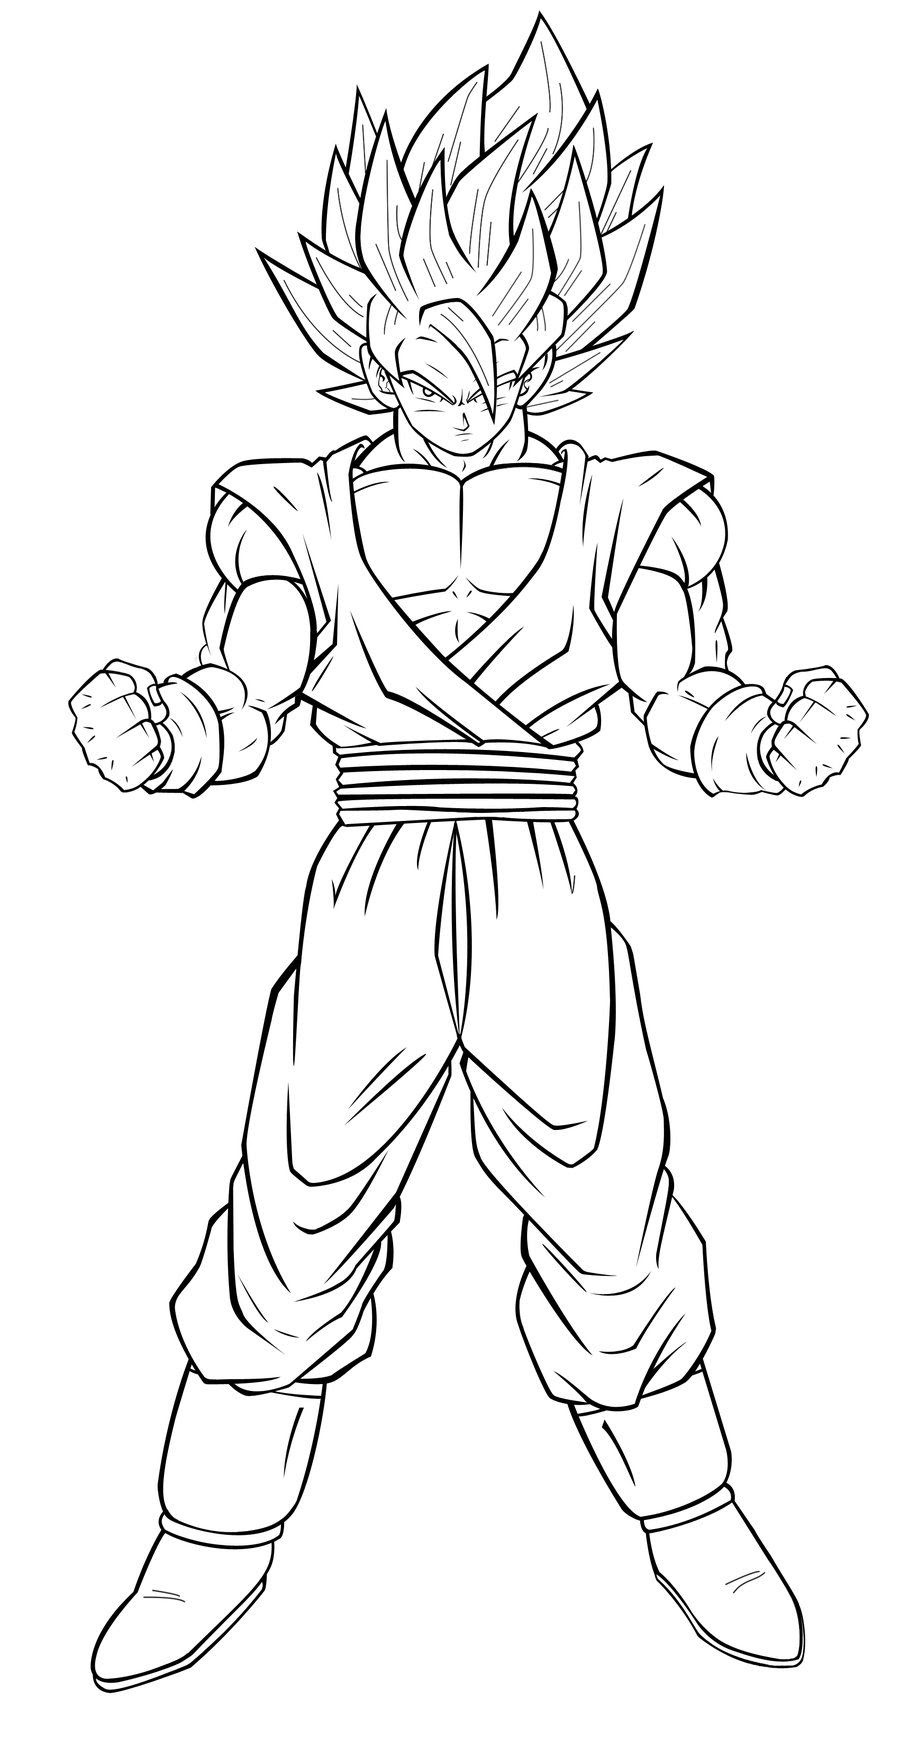 Coloriage Dragon Ball Super Black Goku Dragon Ball Z Goku Super